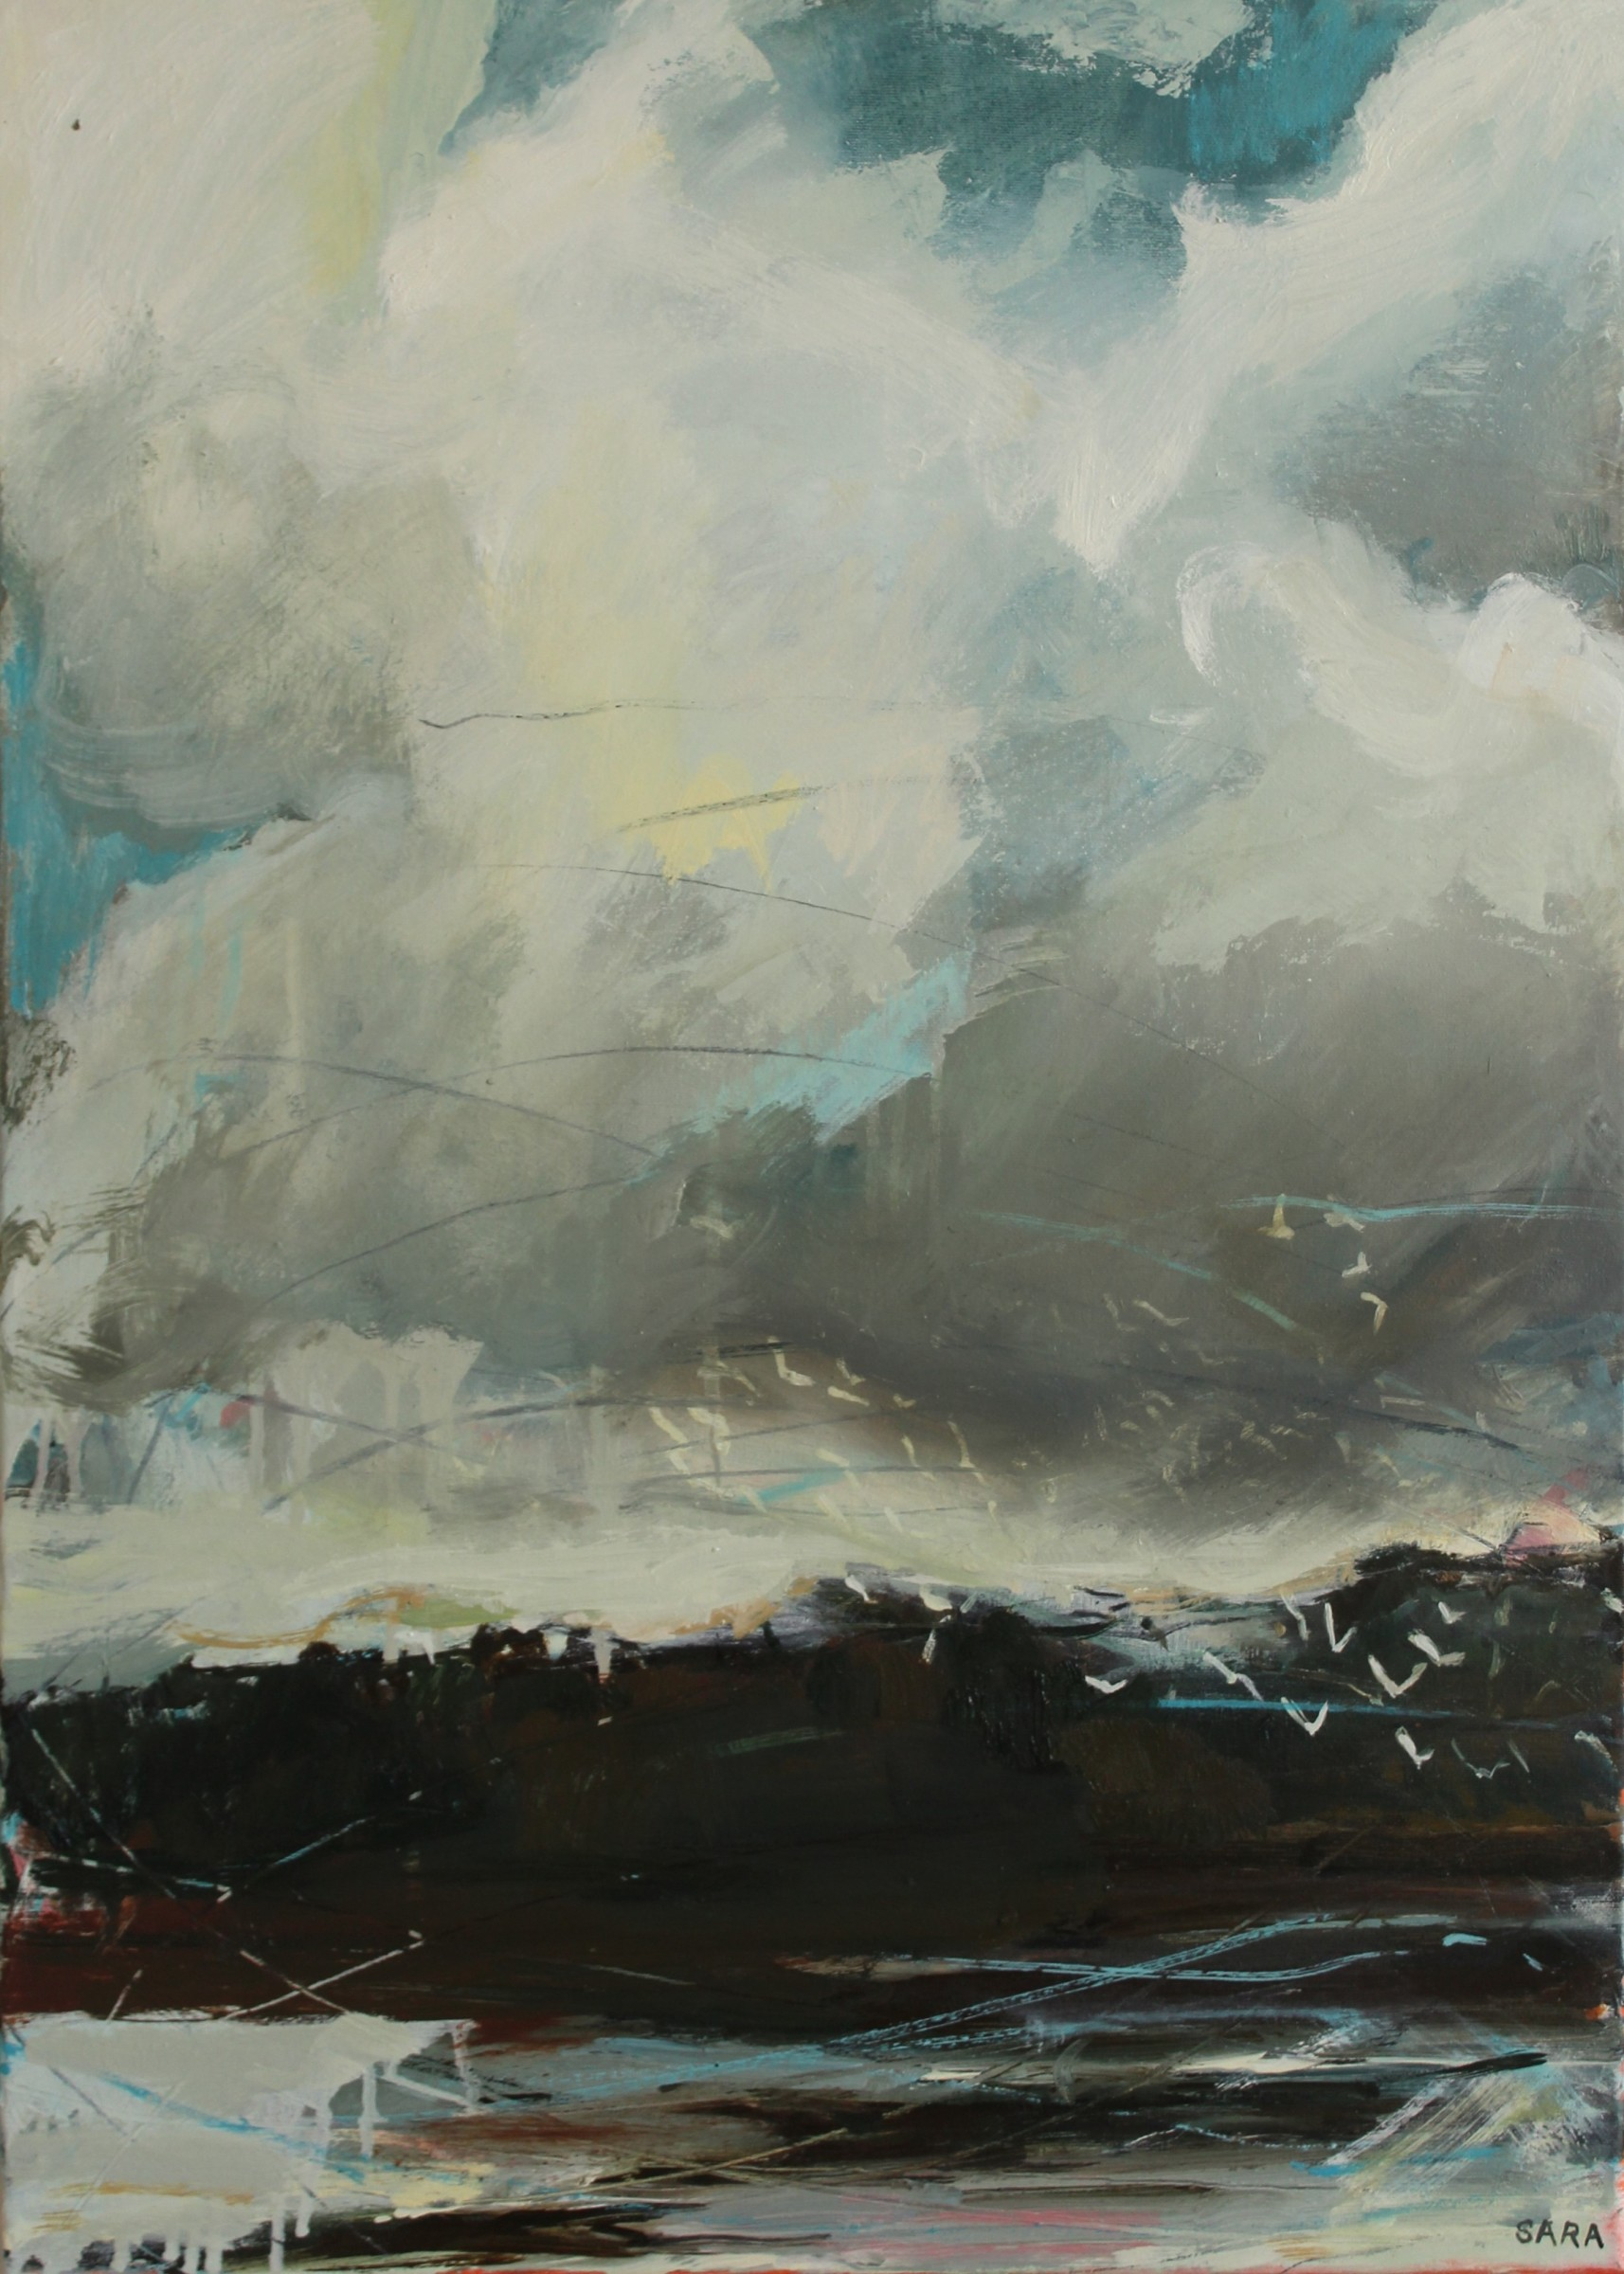 "<span class=""link fancybox-details-link""><a href=""/artists/159-sara-dudman-rwa/works/6558-sara-dudman-rwa-black-headed-gulls-hayle-estuary-2017/"">View Detail Page</a></span><div class=""artist""><strong>Sara Dudman RWA</strong></div> <div class=""title""><em>Black Headed Gulls (Hayle Estuary)</em>, 2017</div> <div class=""medium"">Oil on canvas</div> <div class=""dimensions"">h. 54 x w. 74 cm</div><div class=""price"">£850.00</div><div class=""copyright_line"">Ownart: £85 x 10 Months, 0 % APR</div>"